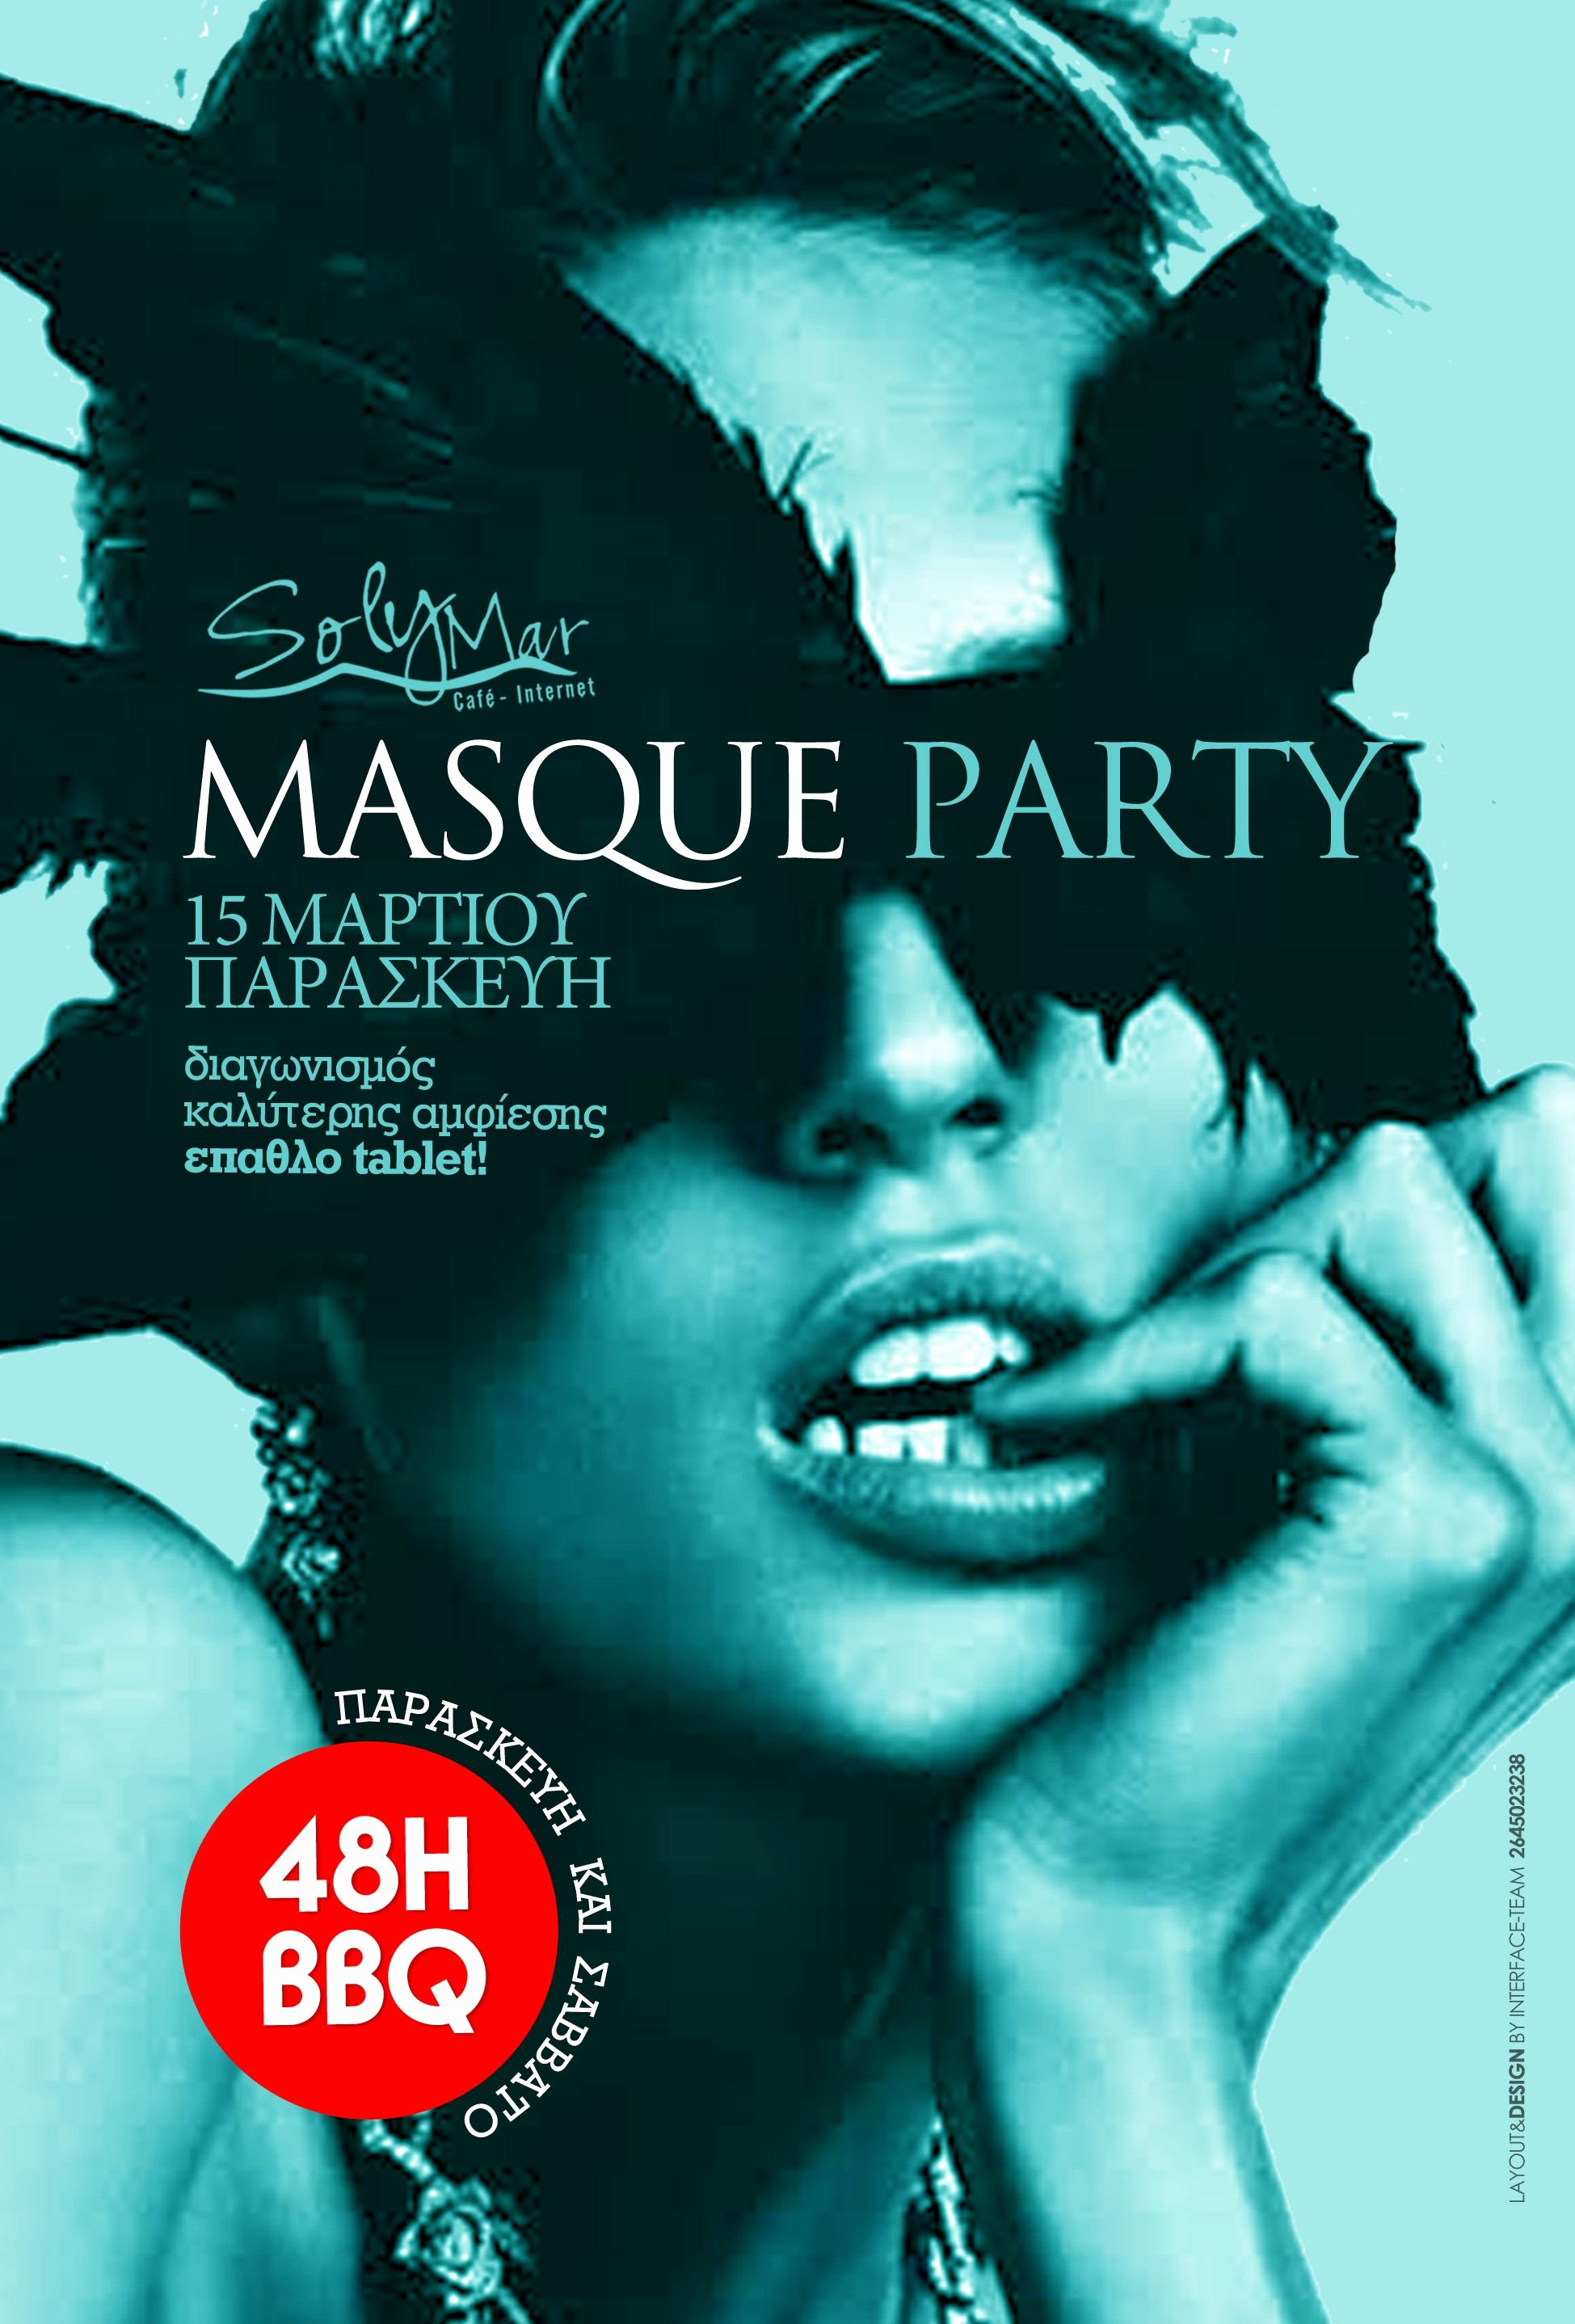 Party Poster Ideas Luxury Masque Party event Poster Fnk event Posters